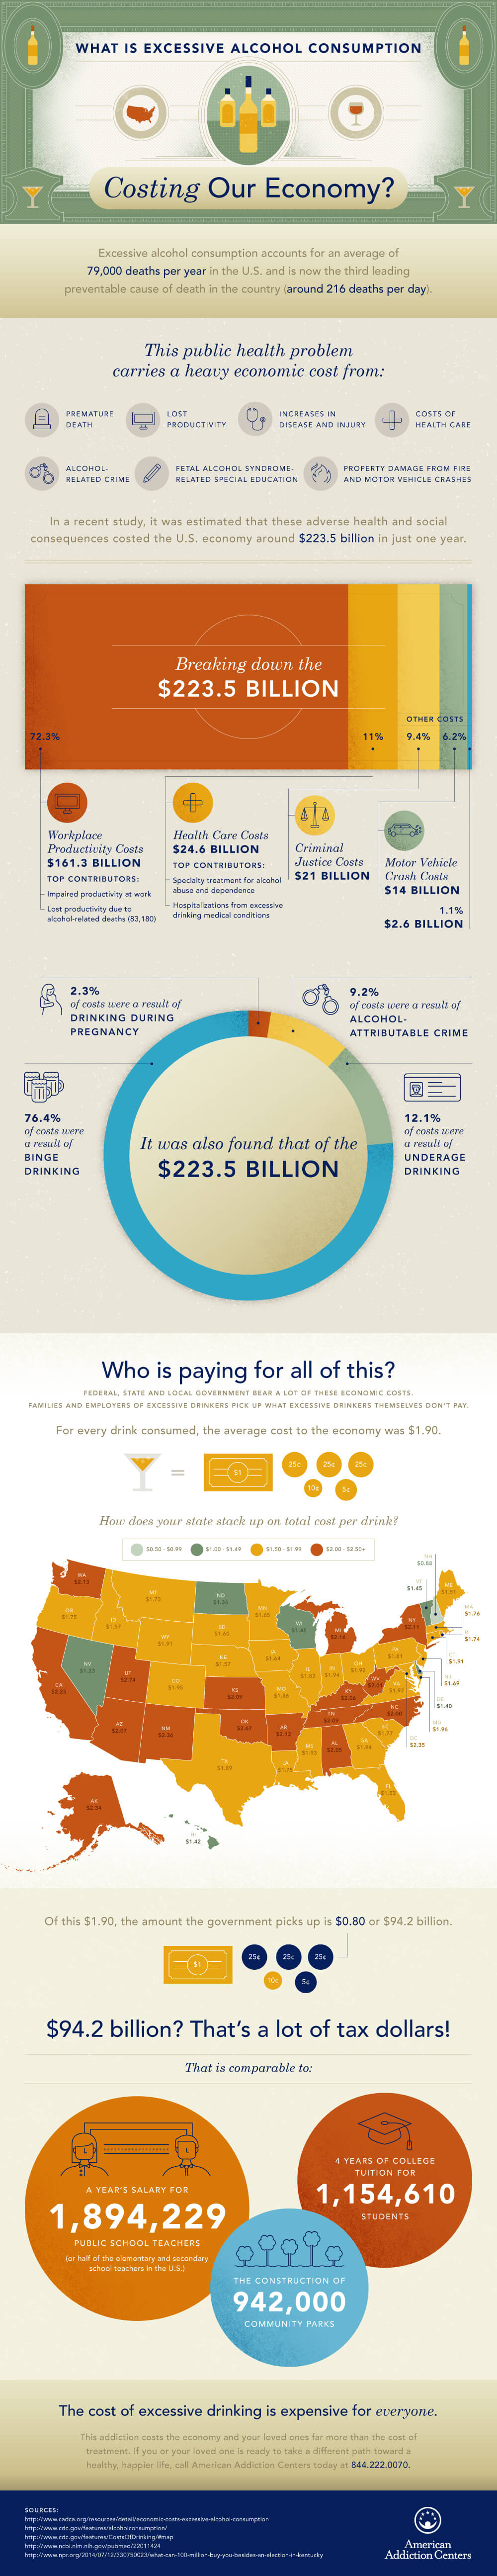 The Hidden Costs of Alcoholism - An Infographic from American Addiction Centers